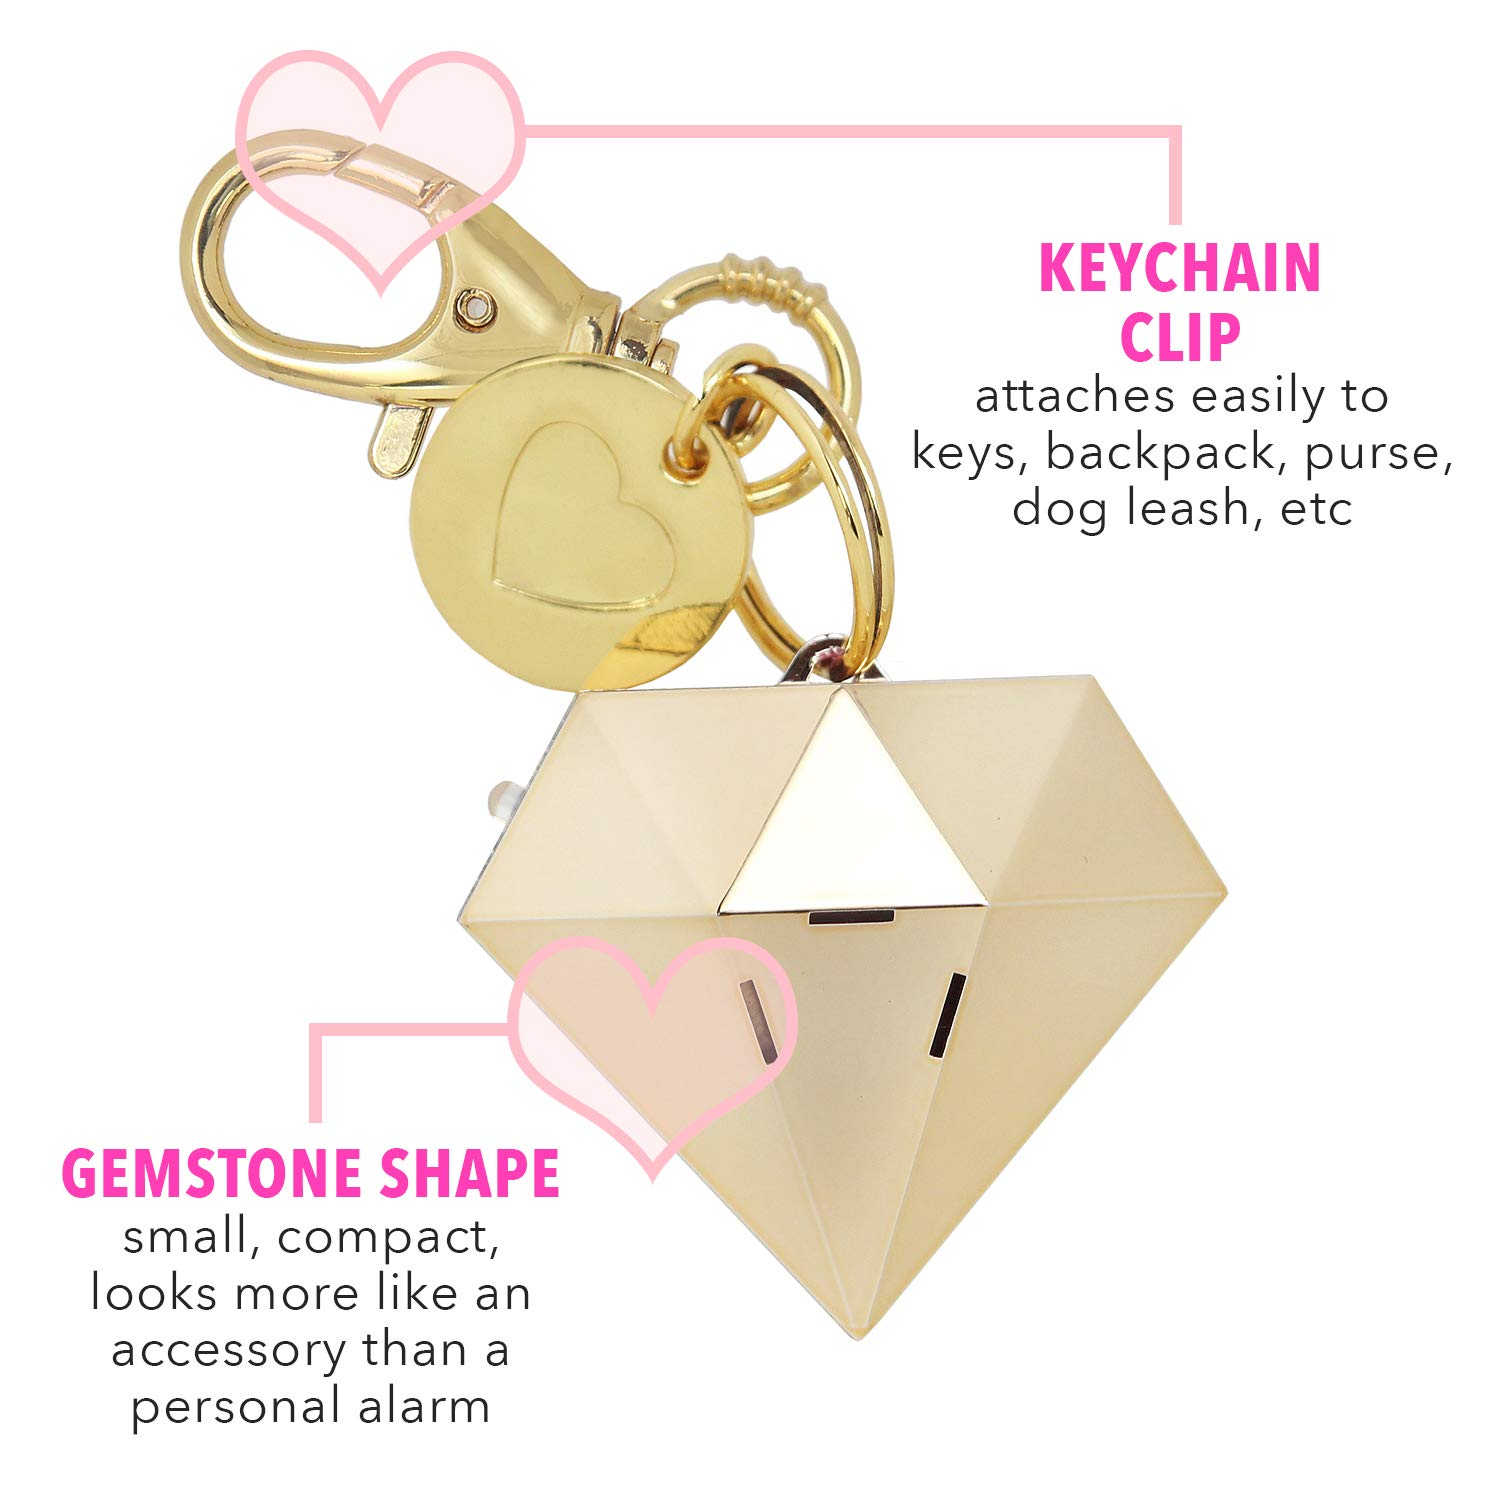 Personal Safety Alarm for Women - Ahh!-larm! Self-Defense Personal Panic Alarm Keychain for Women with LED Safety Light and Clip, Gold Gemstone Diamond by BLINGSTING (Image #2)